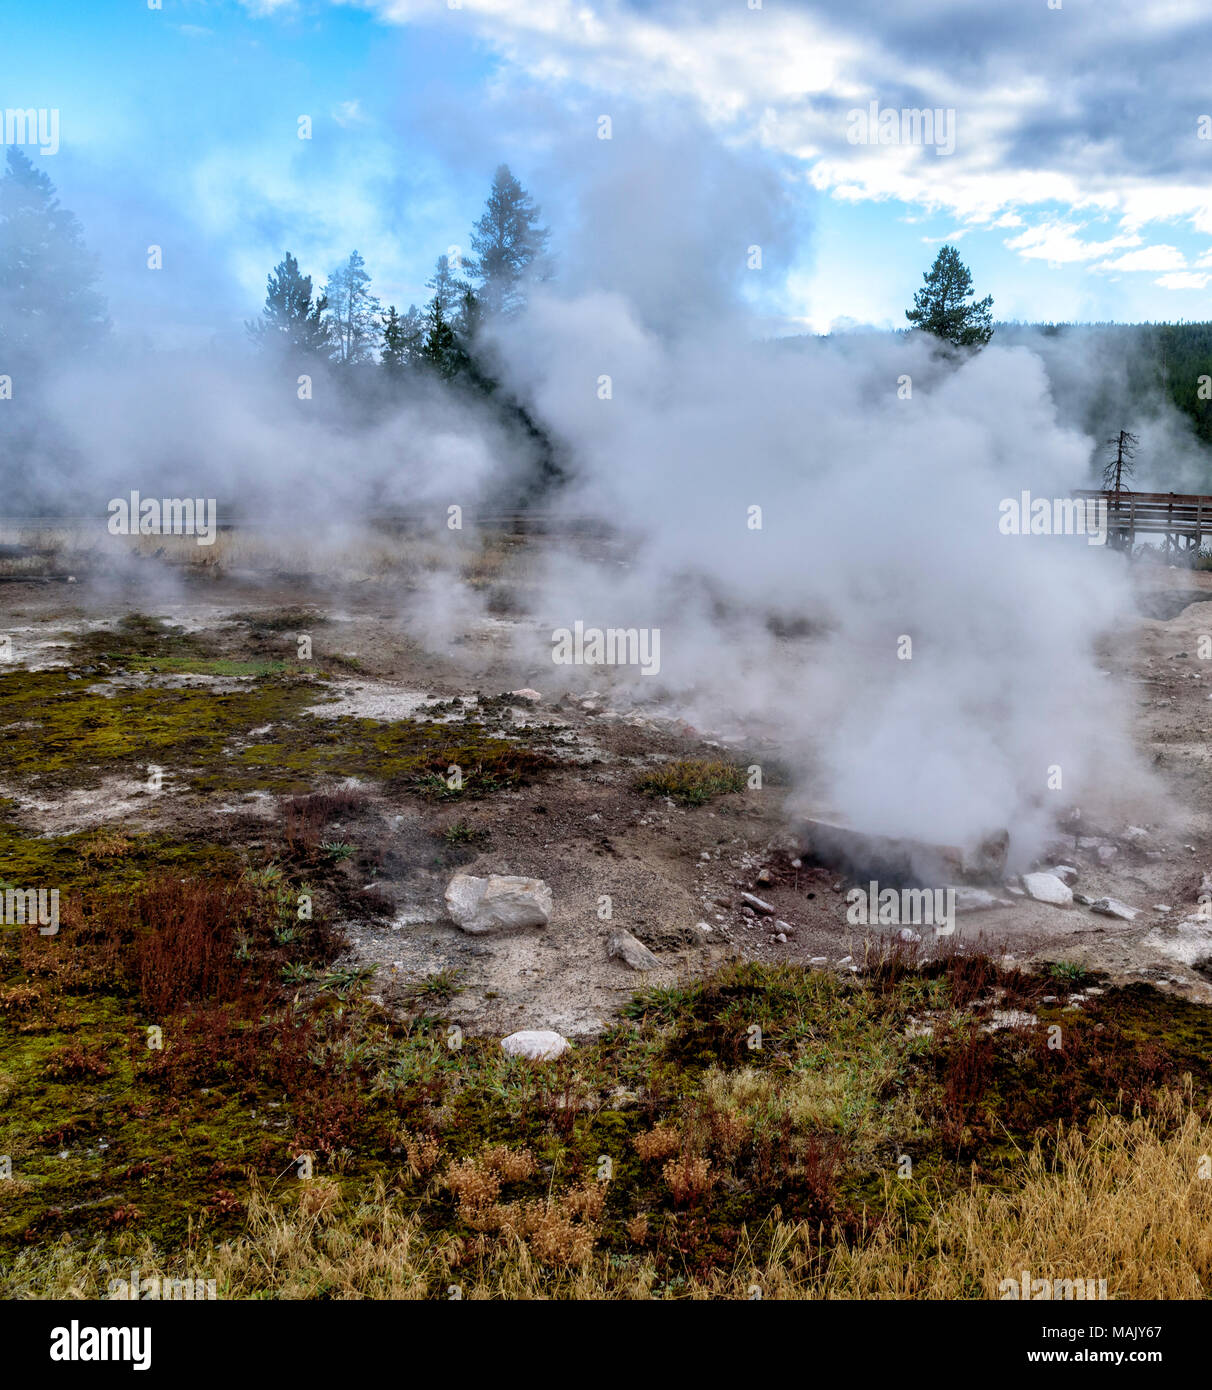 Hot steam and gas rising up out of the ground in clearing of rocks and dead grass in Yellowstone. Stock Photo